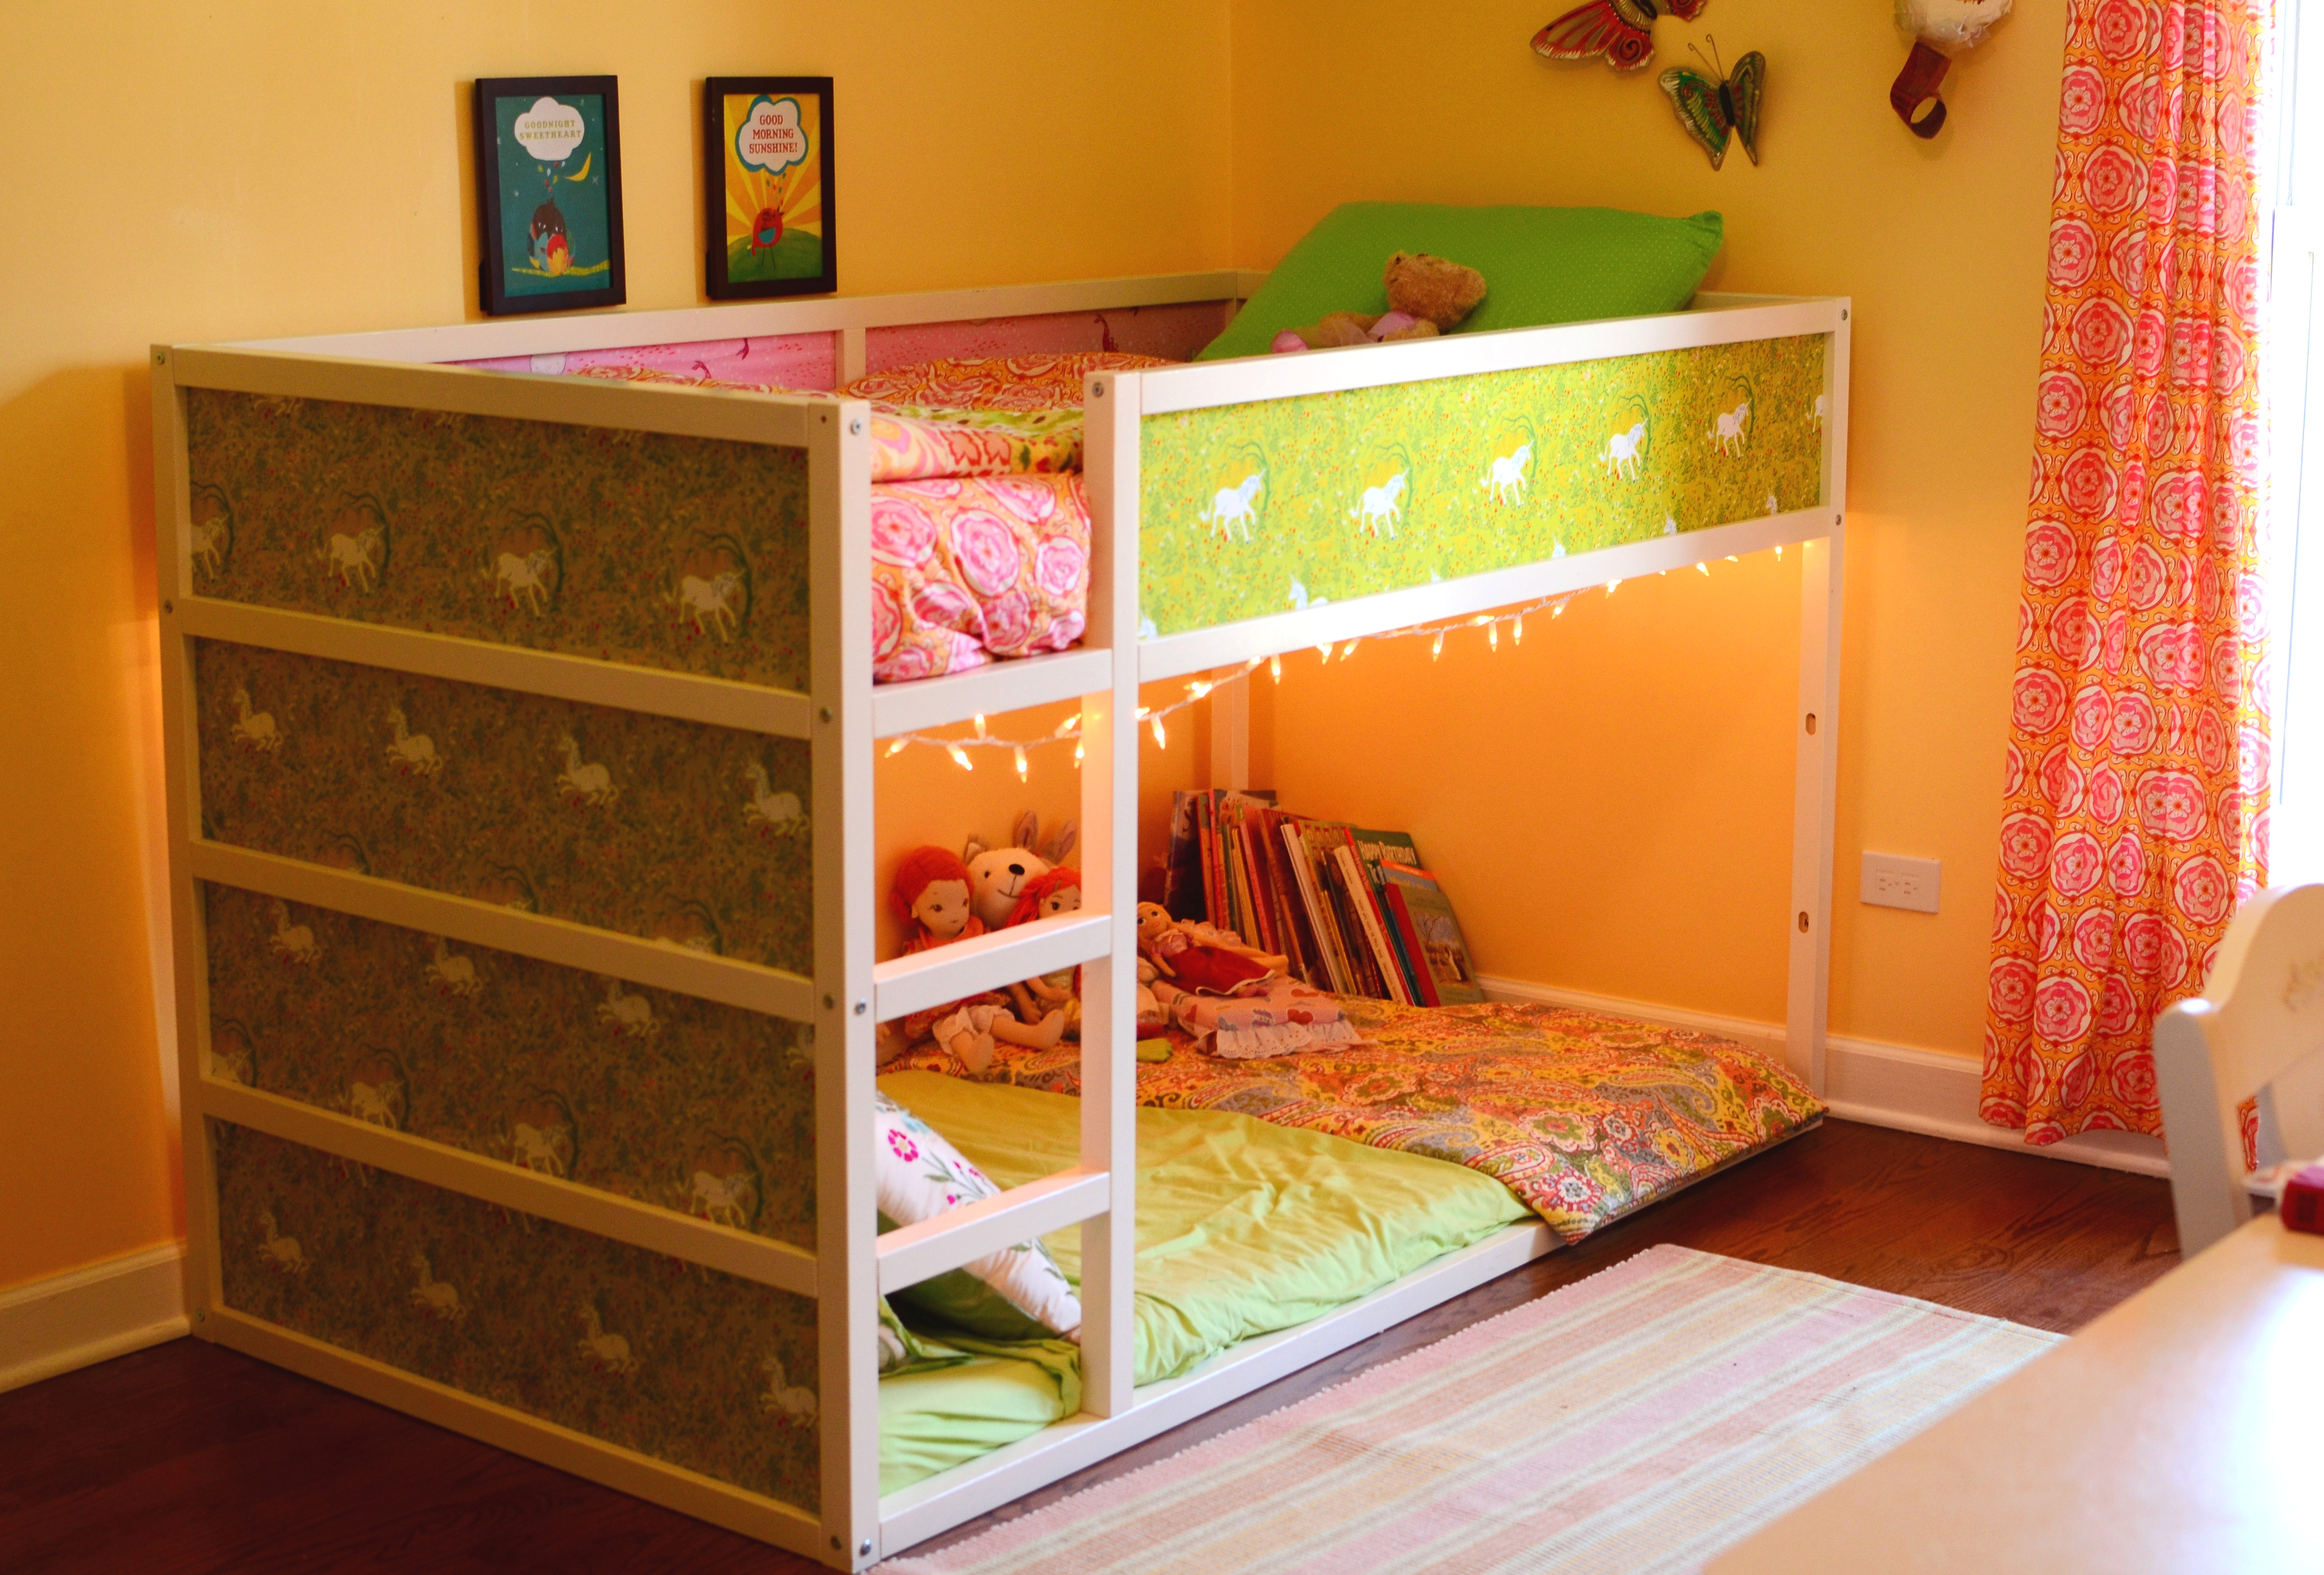 Forum on this topic: How to Change a Kids Room to , how-to-change-a-kids-room-to/